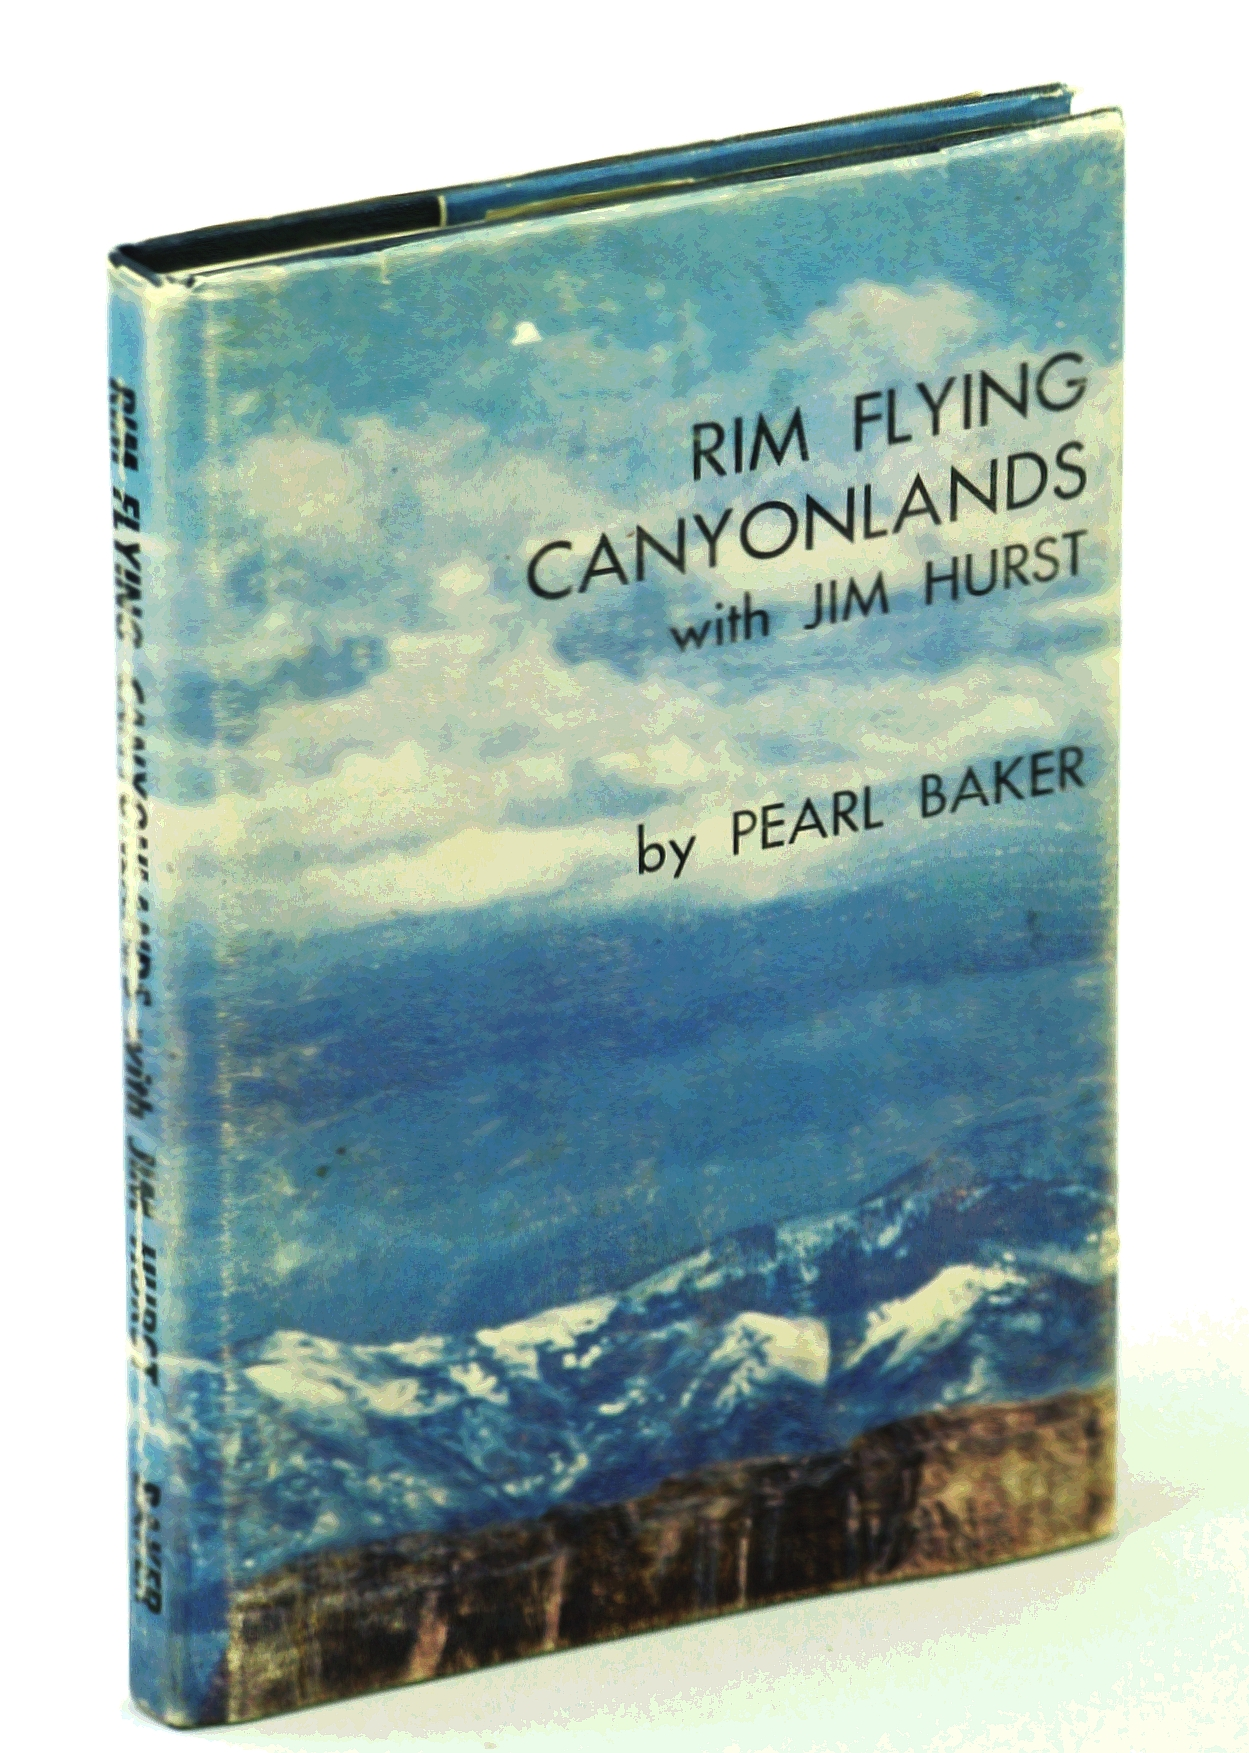 Image for Rim flying Canyonlands